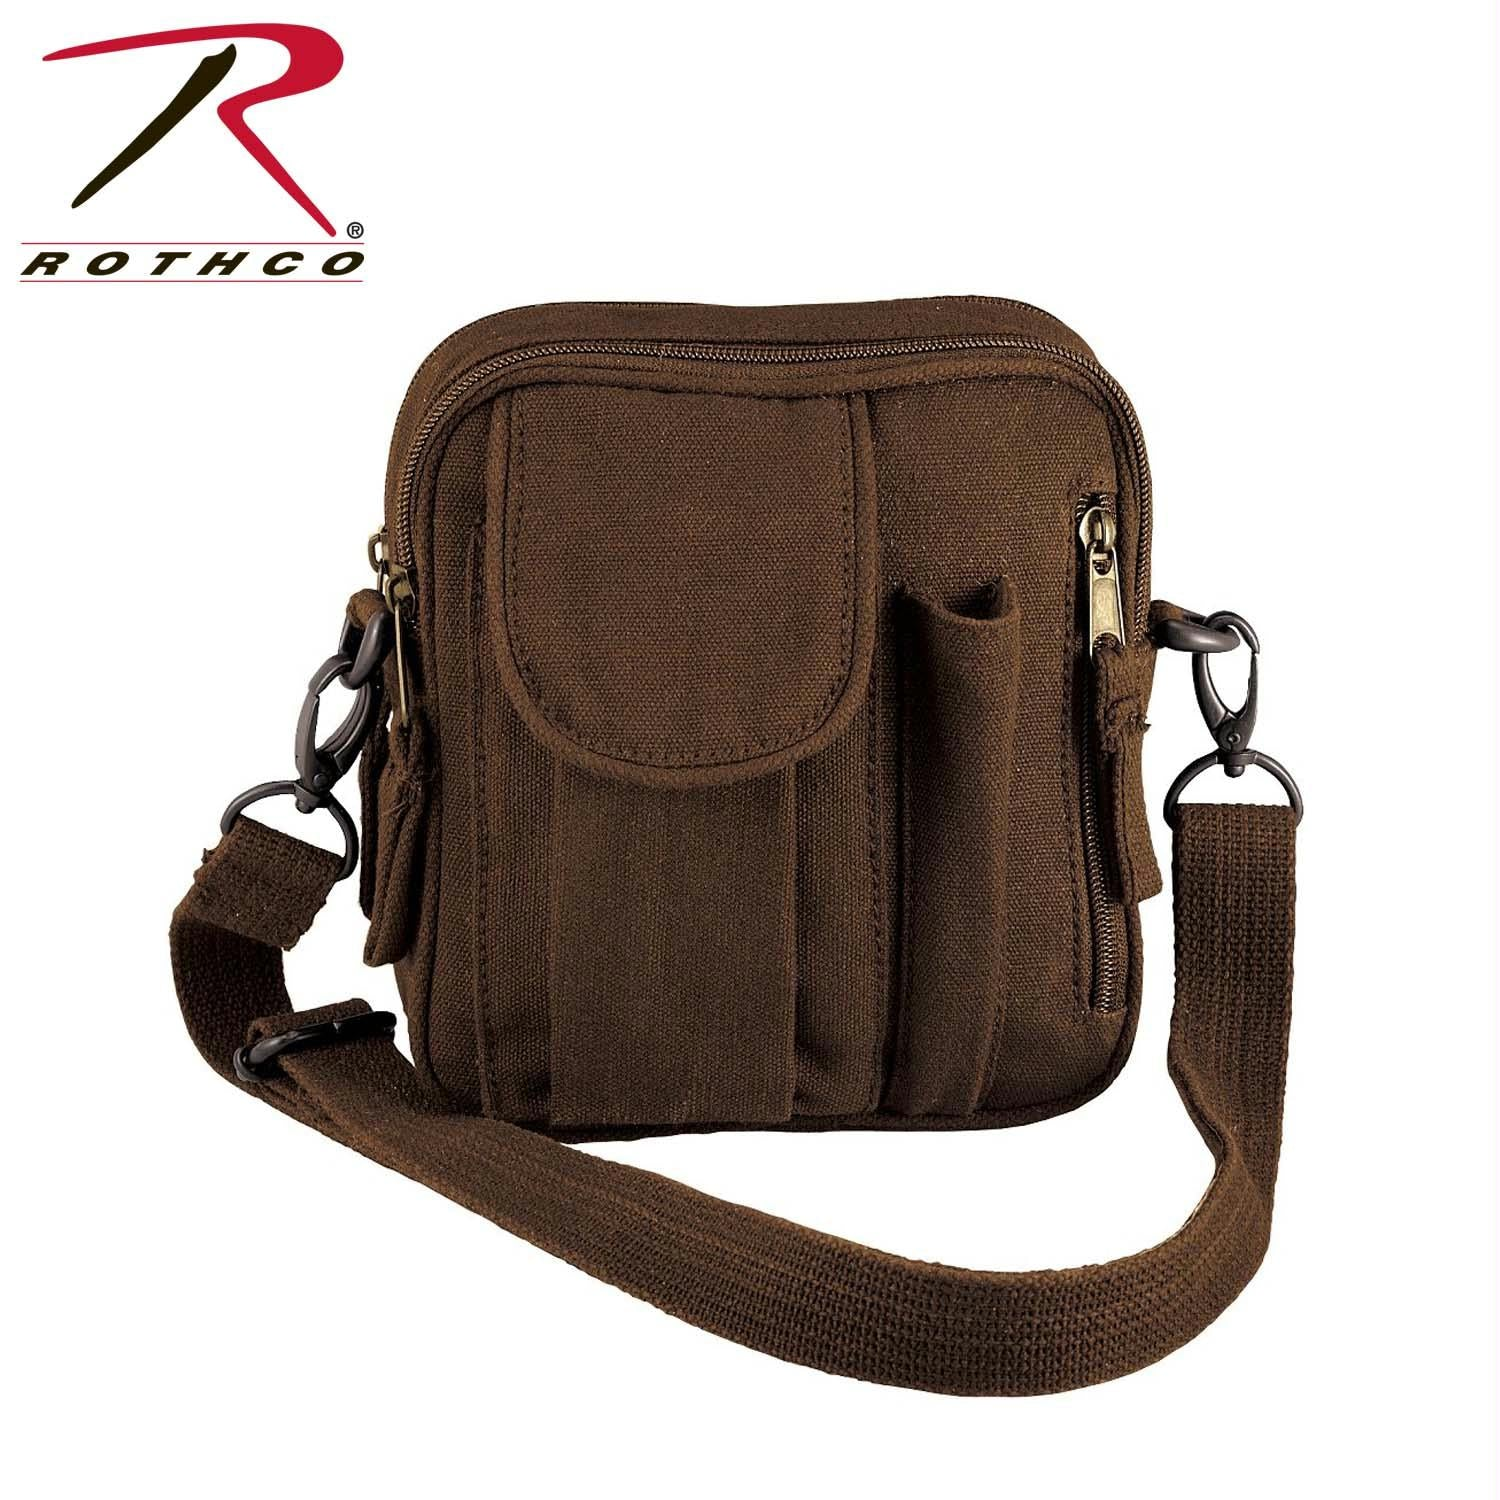 Rothco Canvas Organizer Bag - Brown